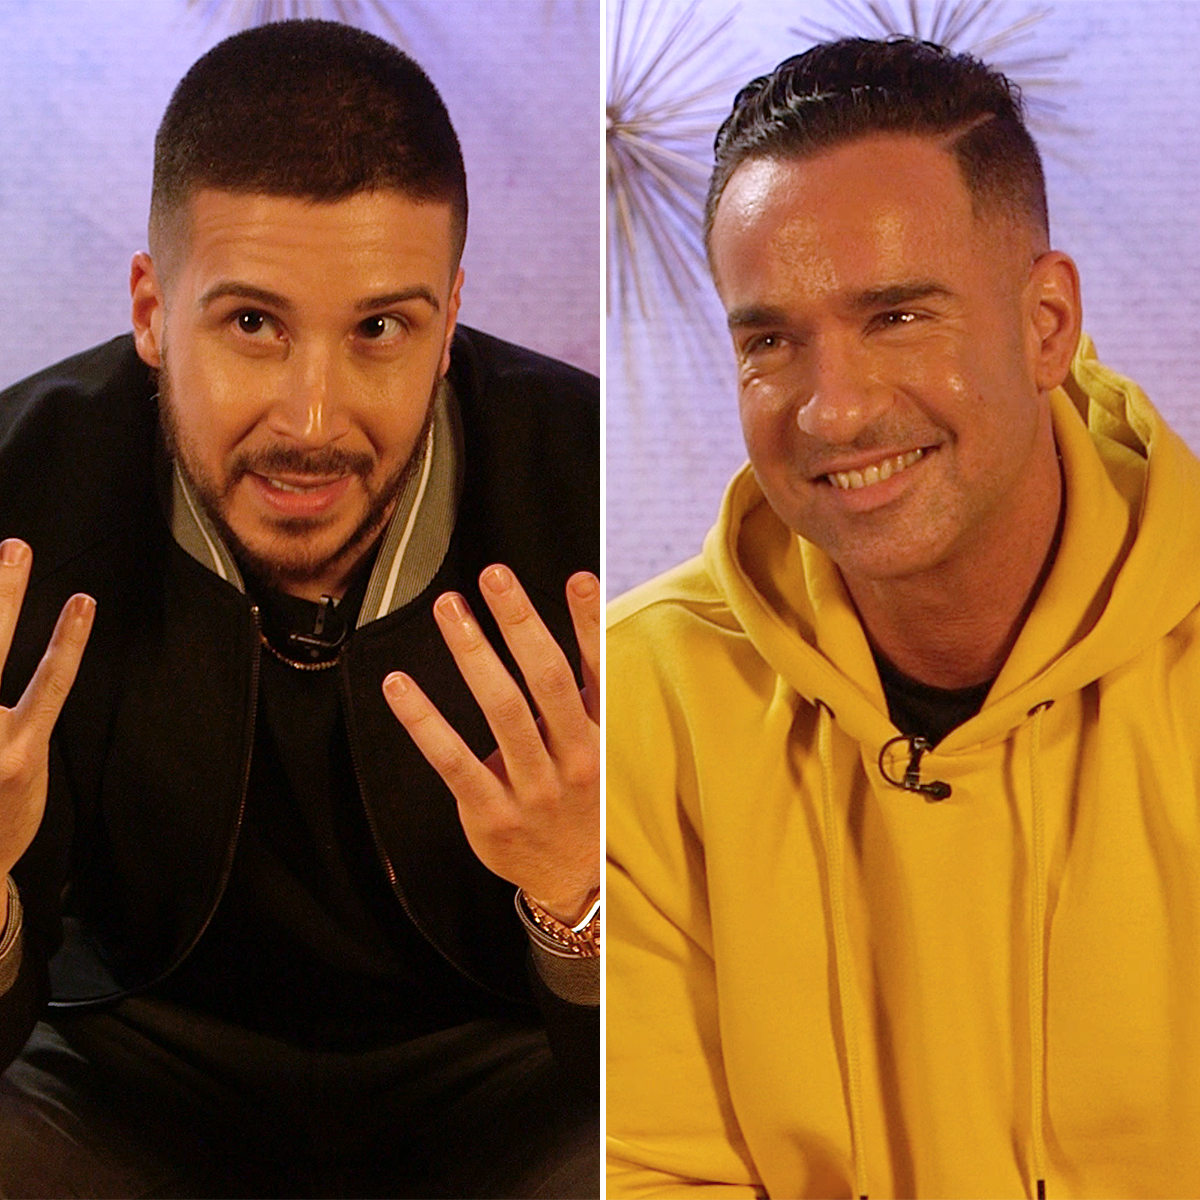 Vinny-Guadagnino,-Mike-'The-Situation'-Sorrentino-Weigh-in-on-The-Bachelor's-Peter-Weber-and-Share-More-Secrets